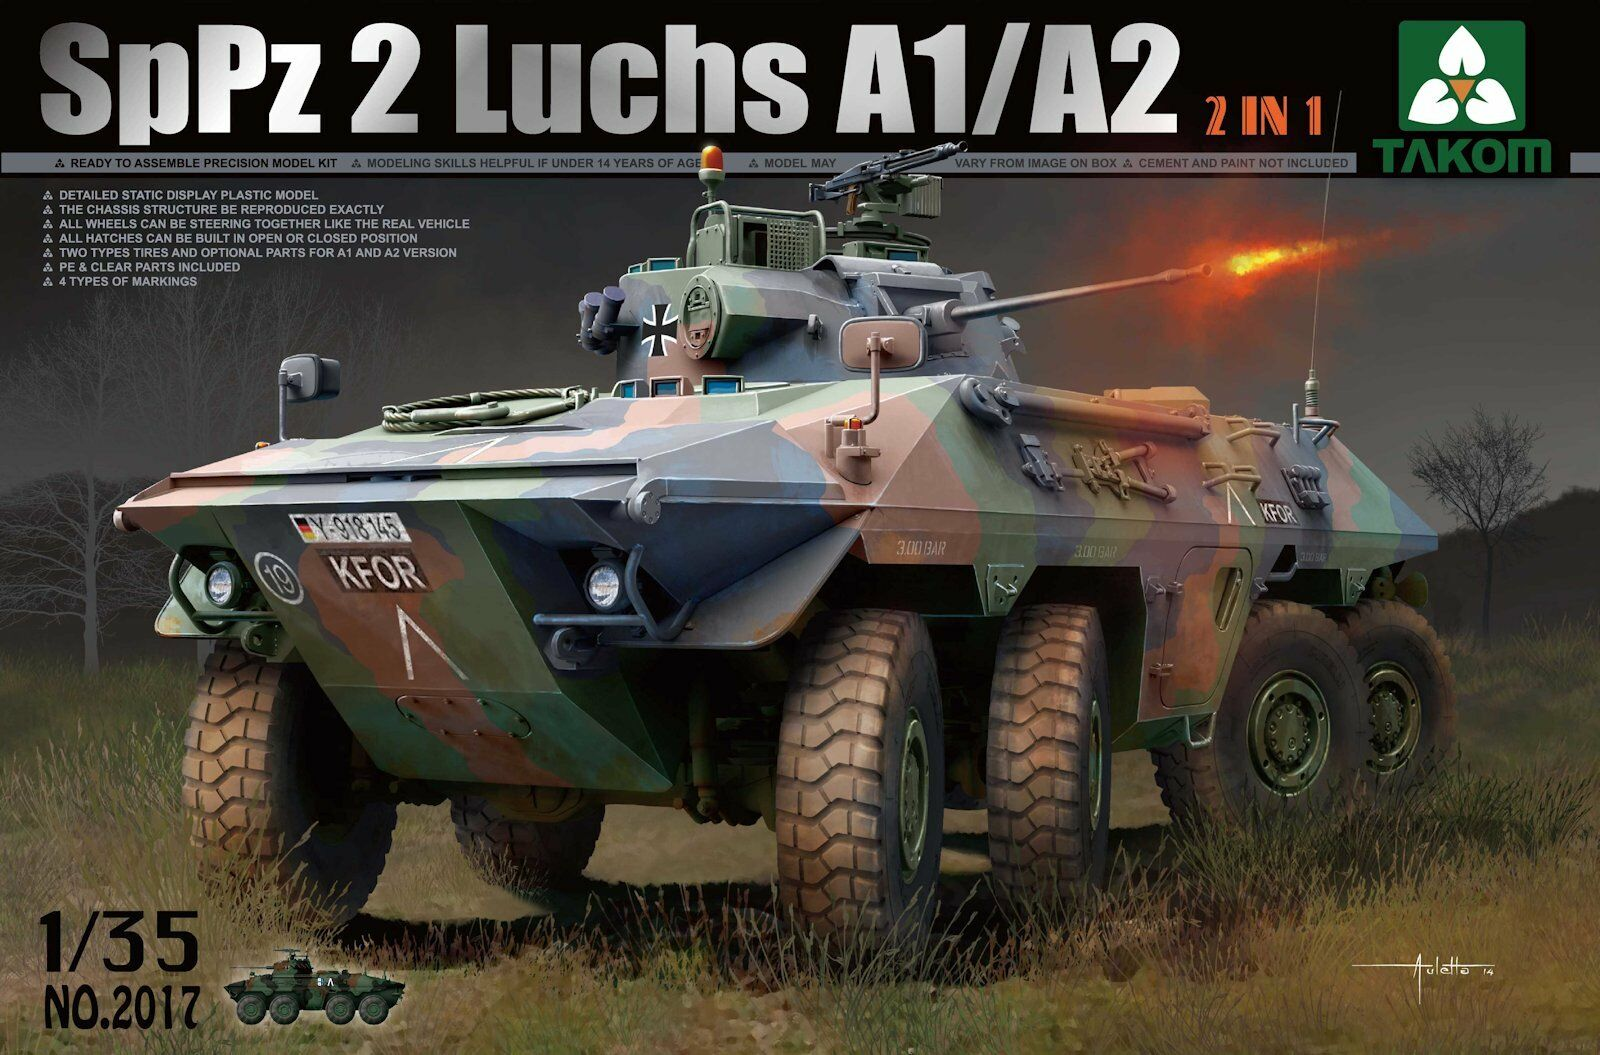 VEHICULE BLINDE ALLEMAND SpPz 2  LUCHS  - KIT TAKOM INTERNATIONAL 1 35 n° 2017